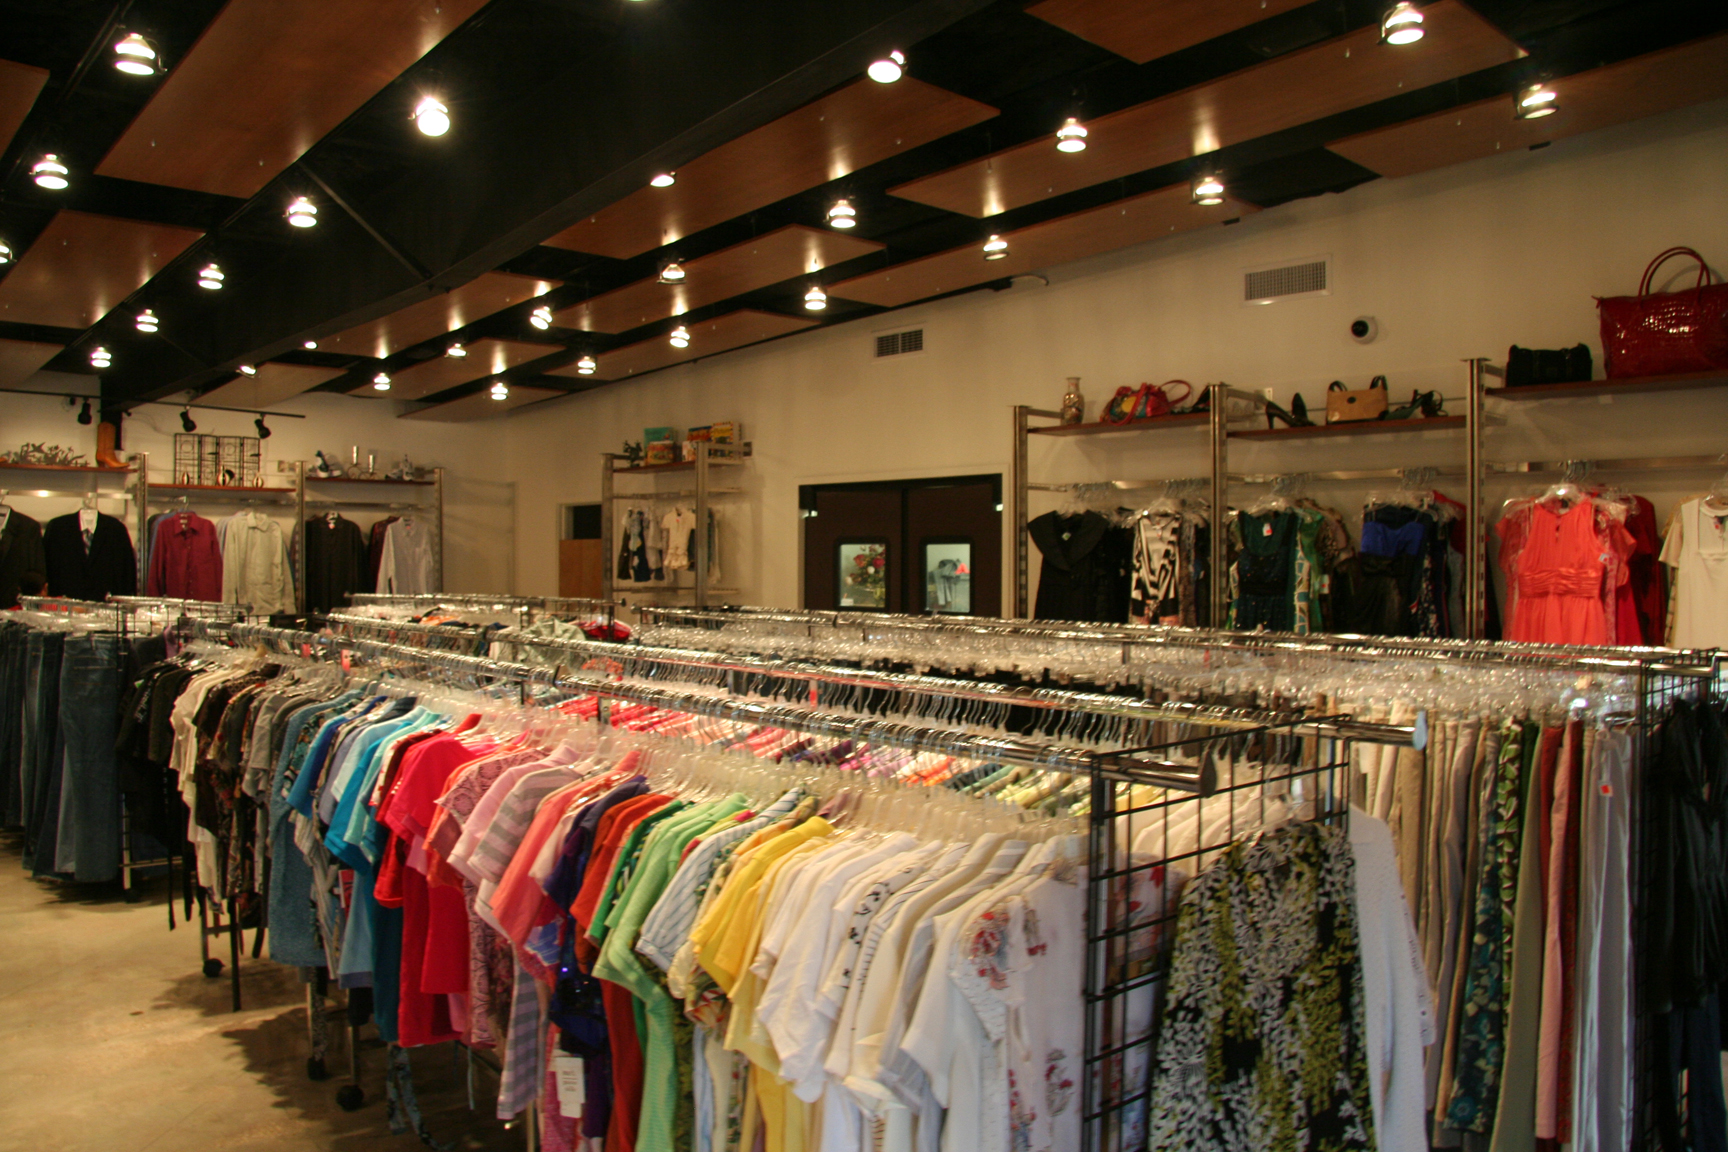 Cute Clothing Stores For Women Goodwill clothing boutique